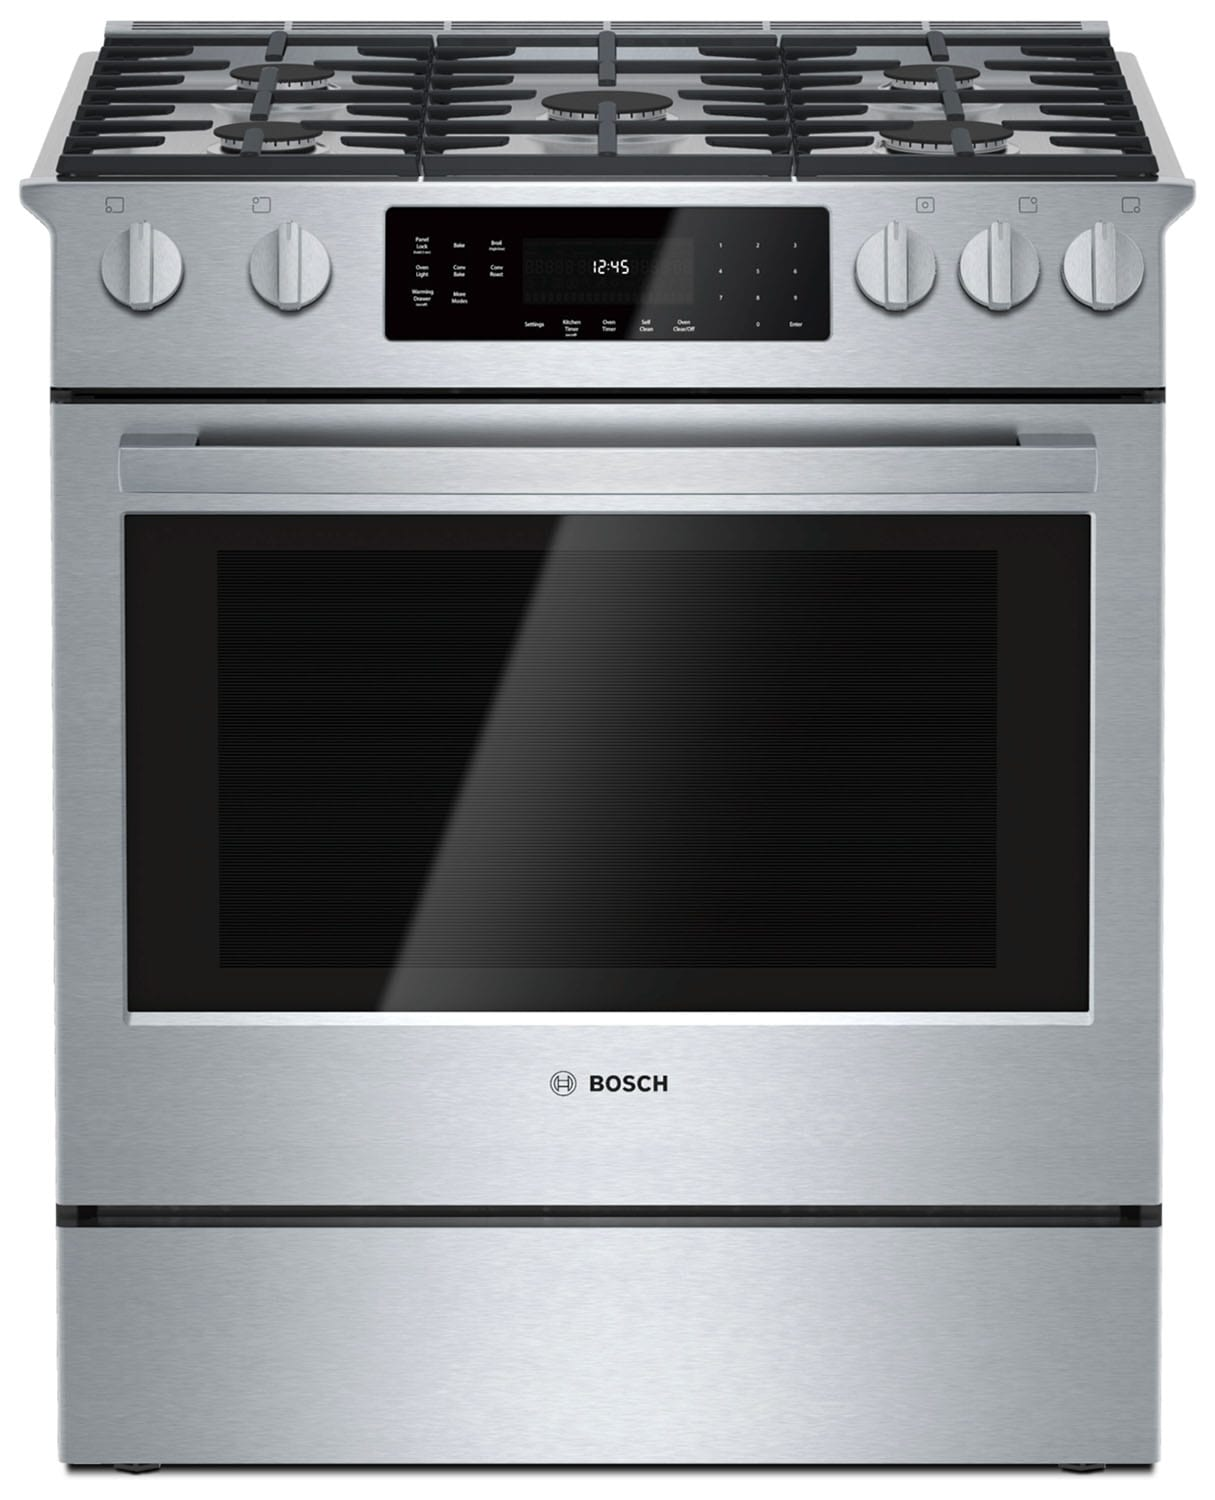 Cooking Products - Bosch Stainless Steel Slide-In Gas Range (4.8 Cu. Ft.) - HGI8054UC